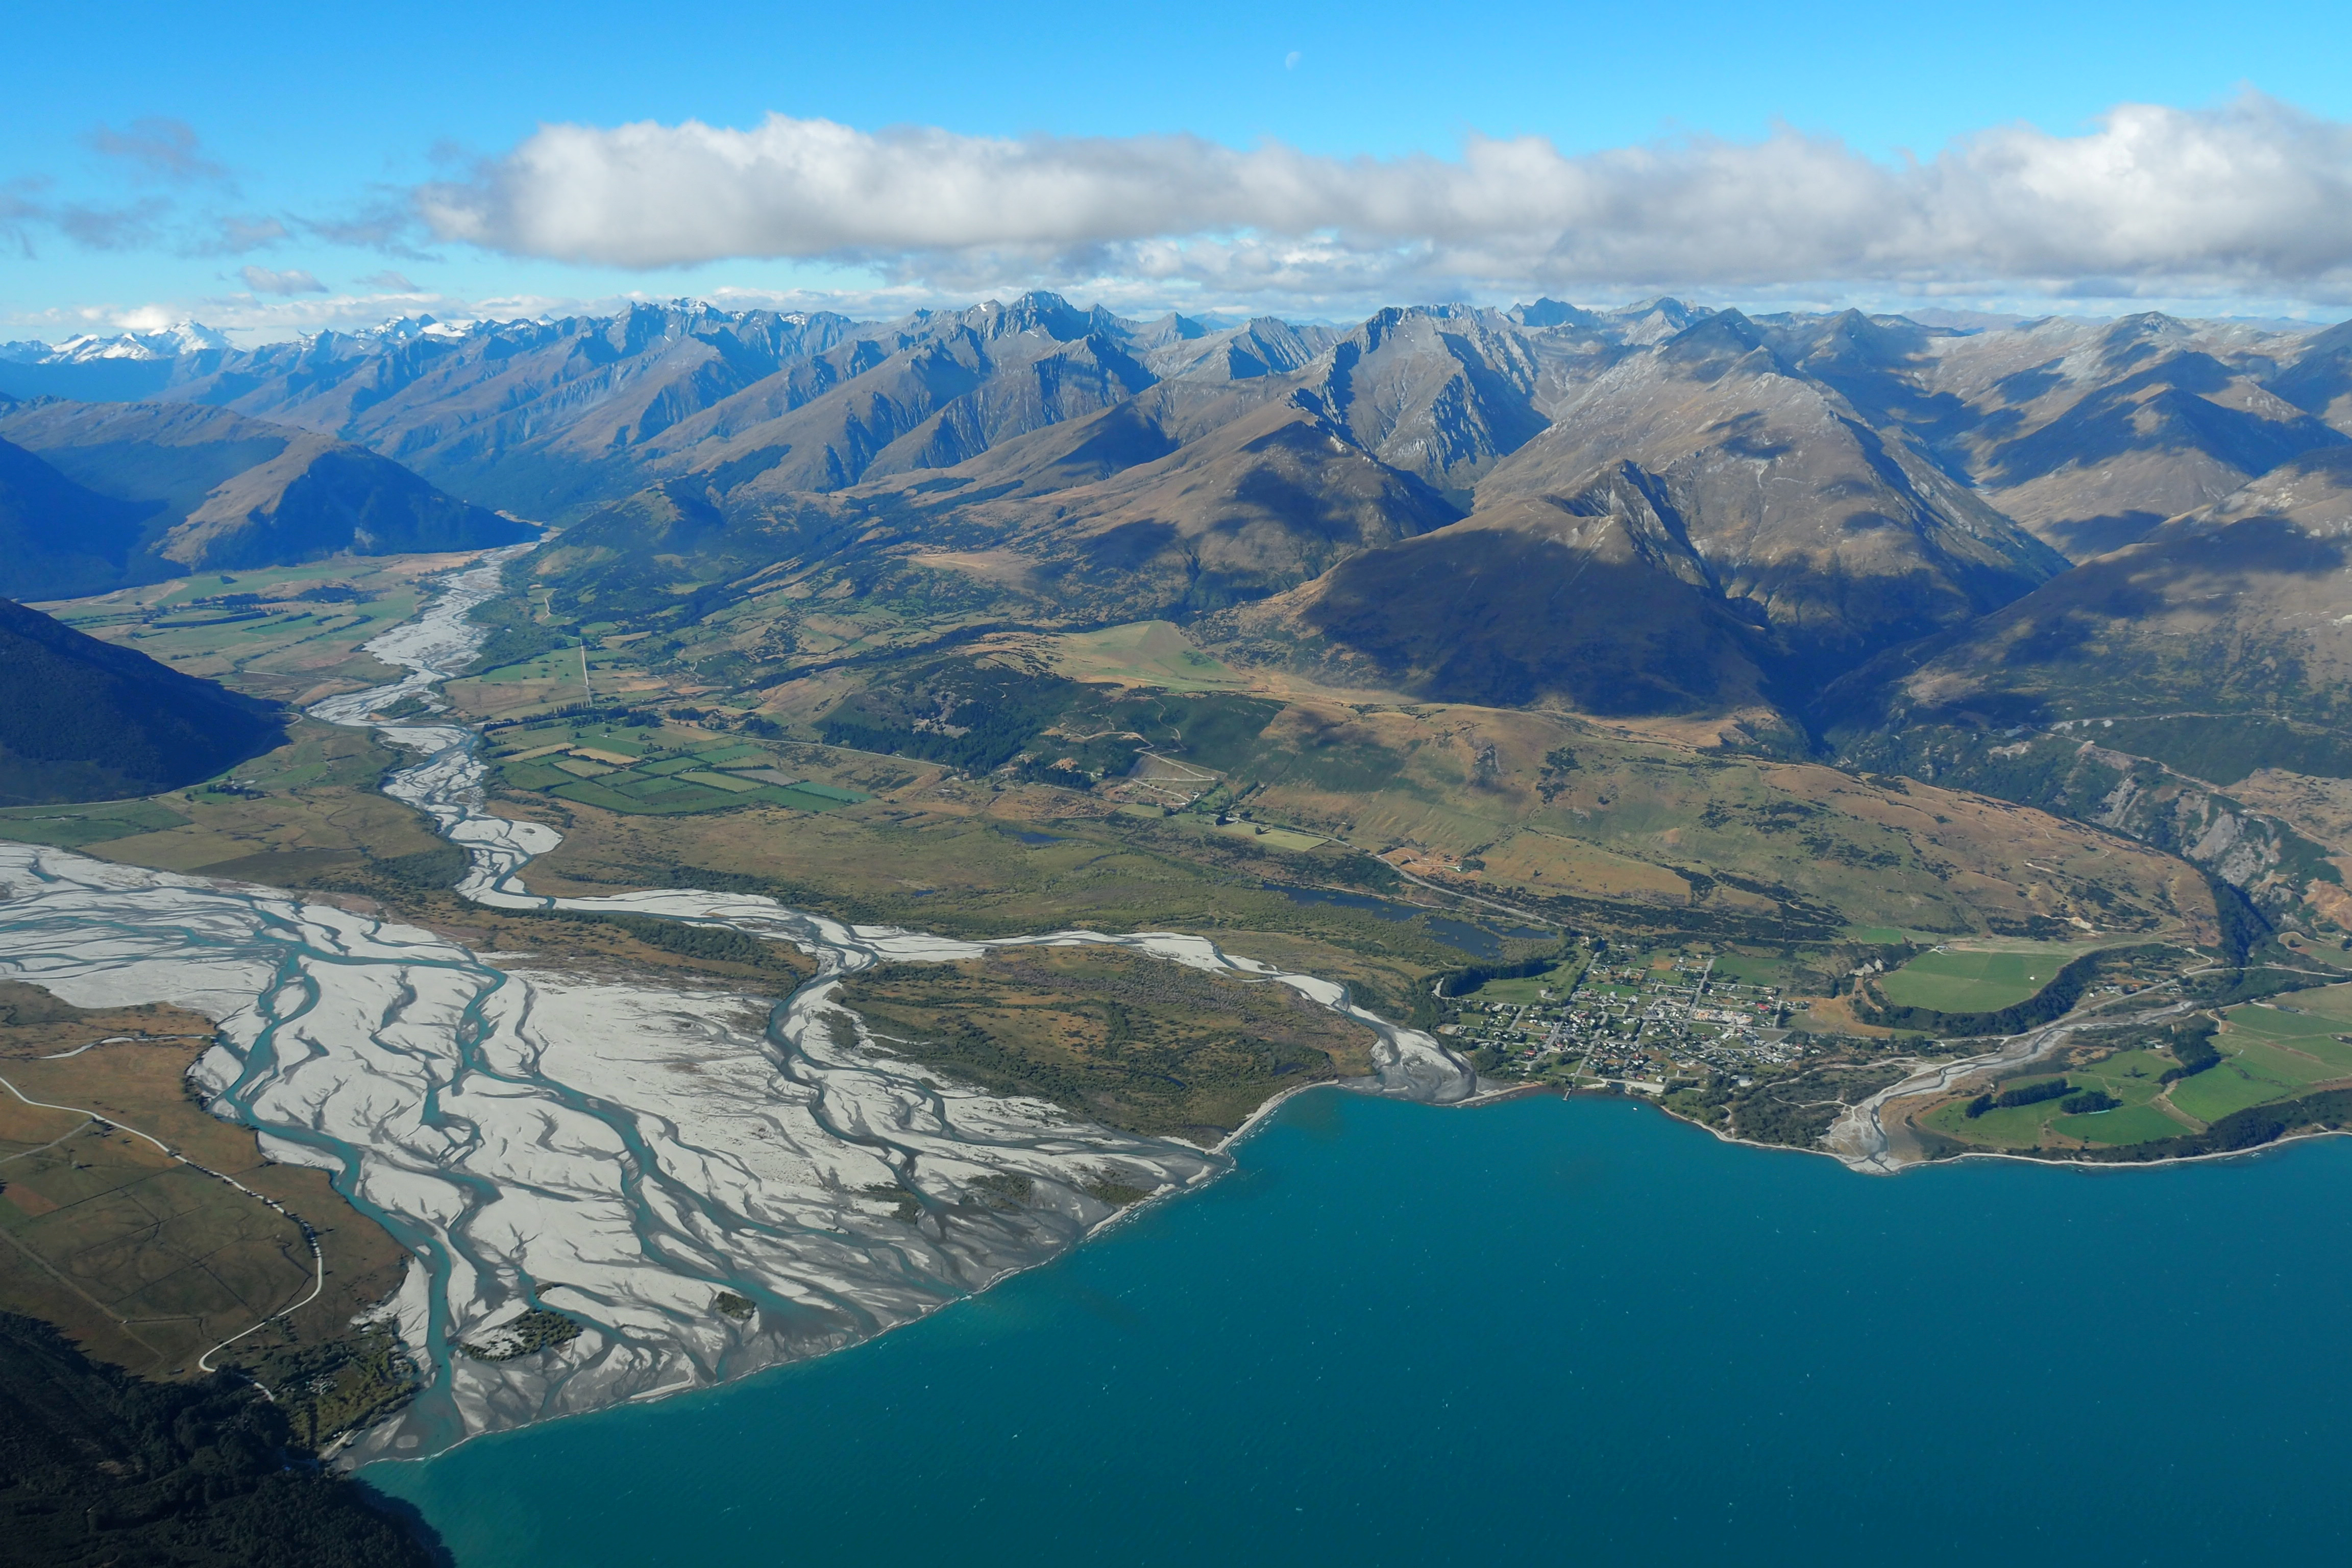 The town of Glenorchy on Lake Wakatipu and Otago river New Zealand March 7, 2017.      REUTERS/Henning Gloystein/File Photo - RC2MUM9UCF5M